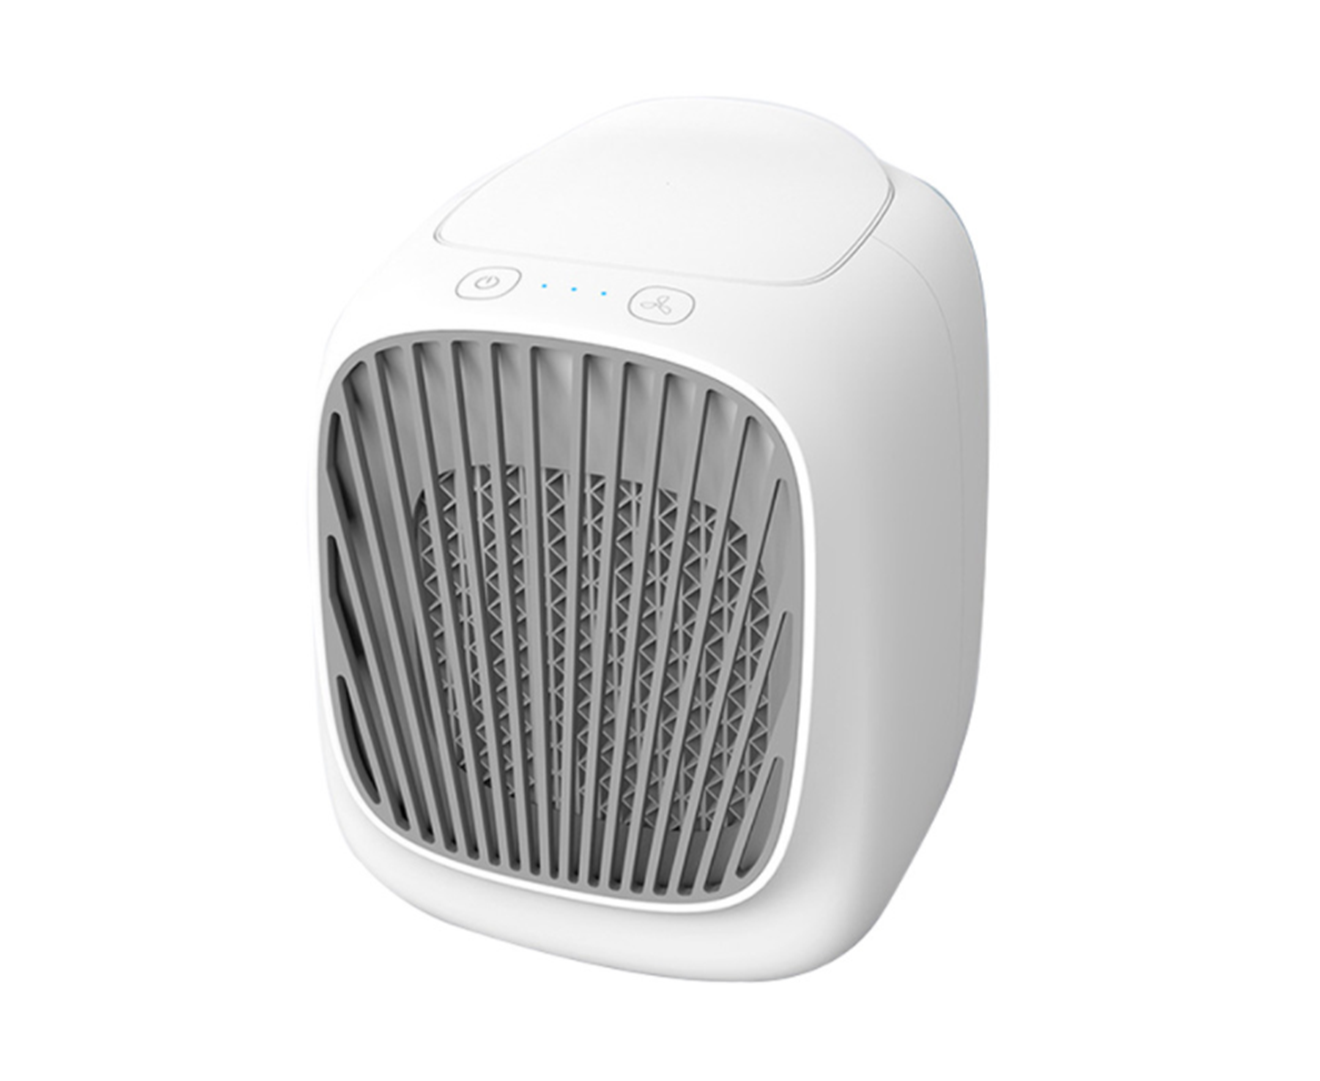 Mini Portable Air Conditioning Fan, Small Swamp Cooler, USB Evaporative Rapid Air Cooling Fans, Office, Room��Camping-WHITE